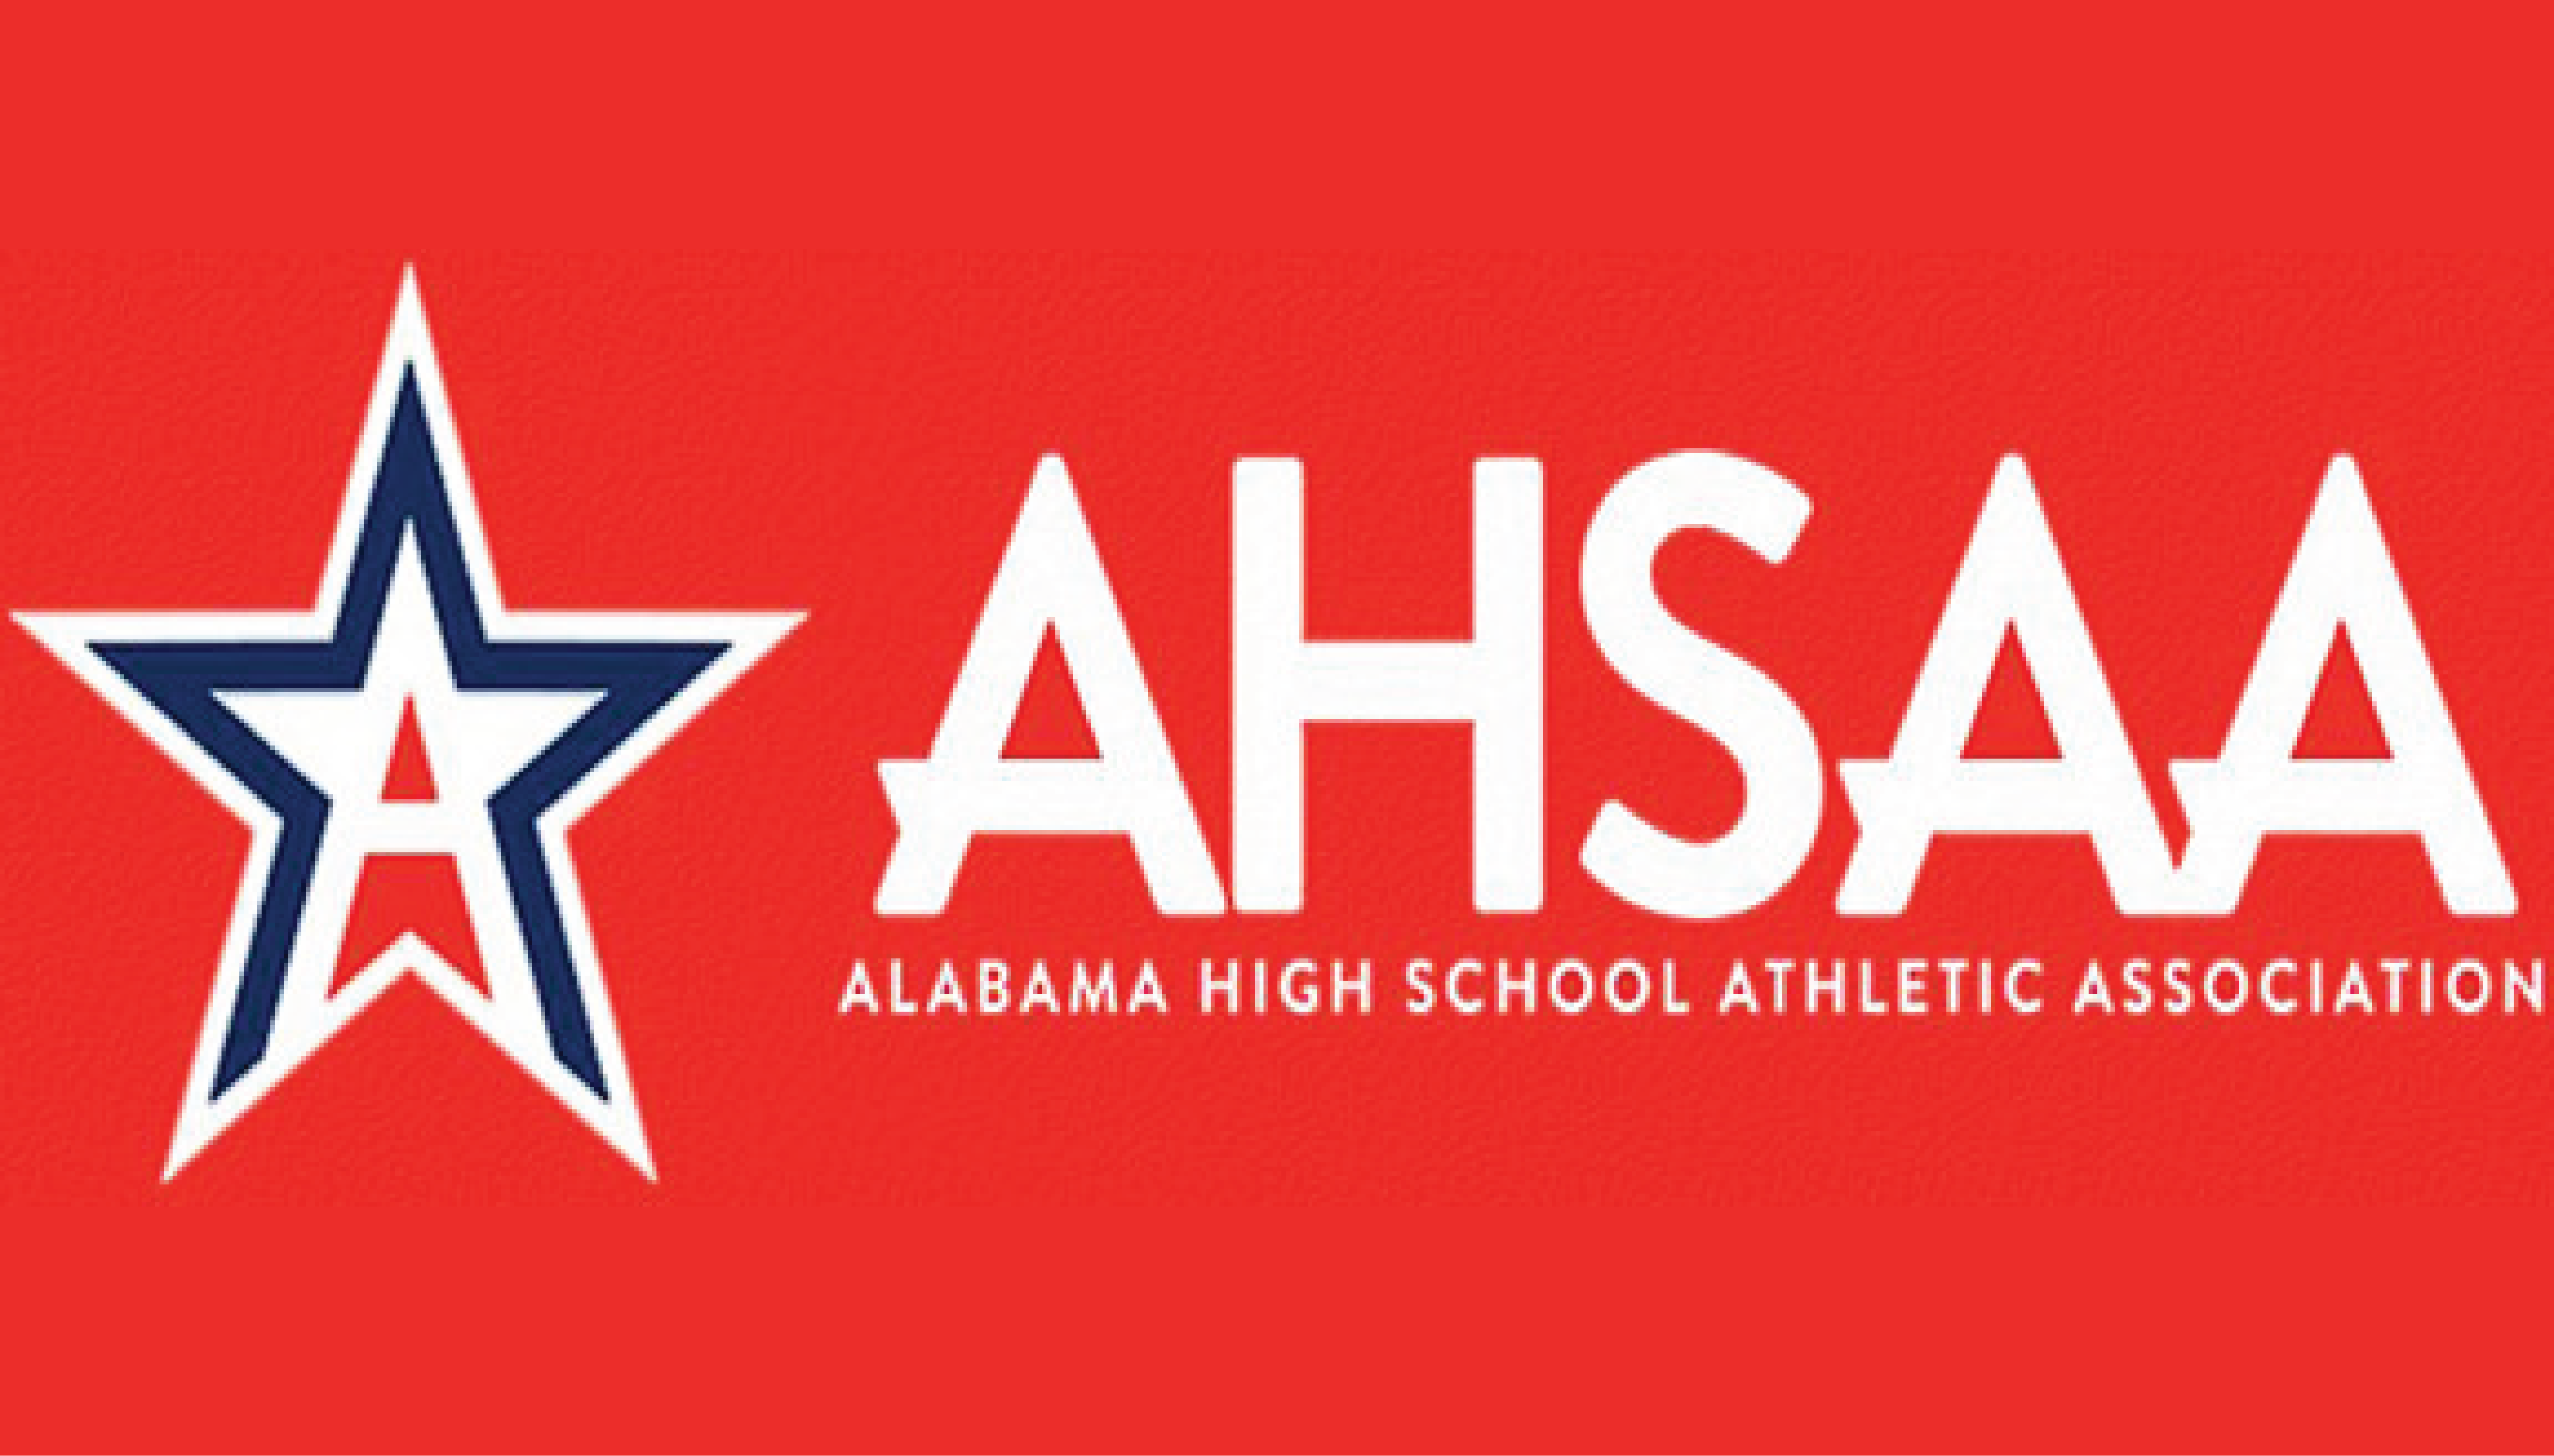 AHSAA Updates on COVID-19